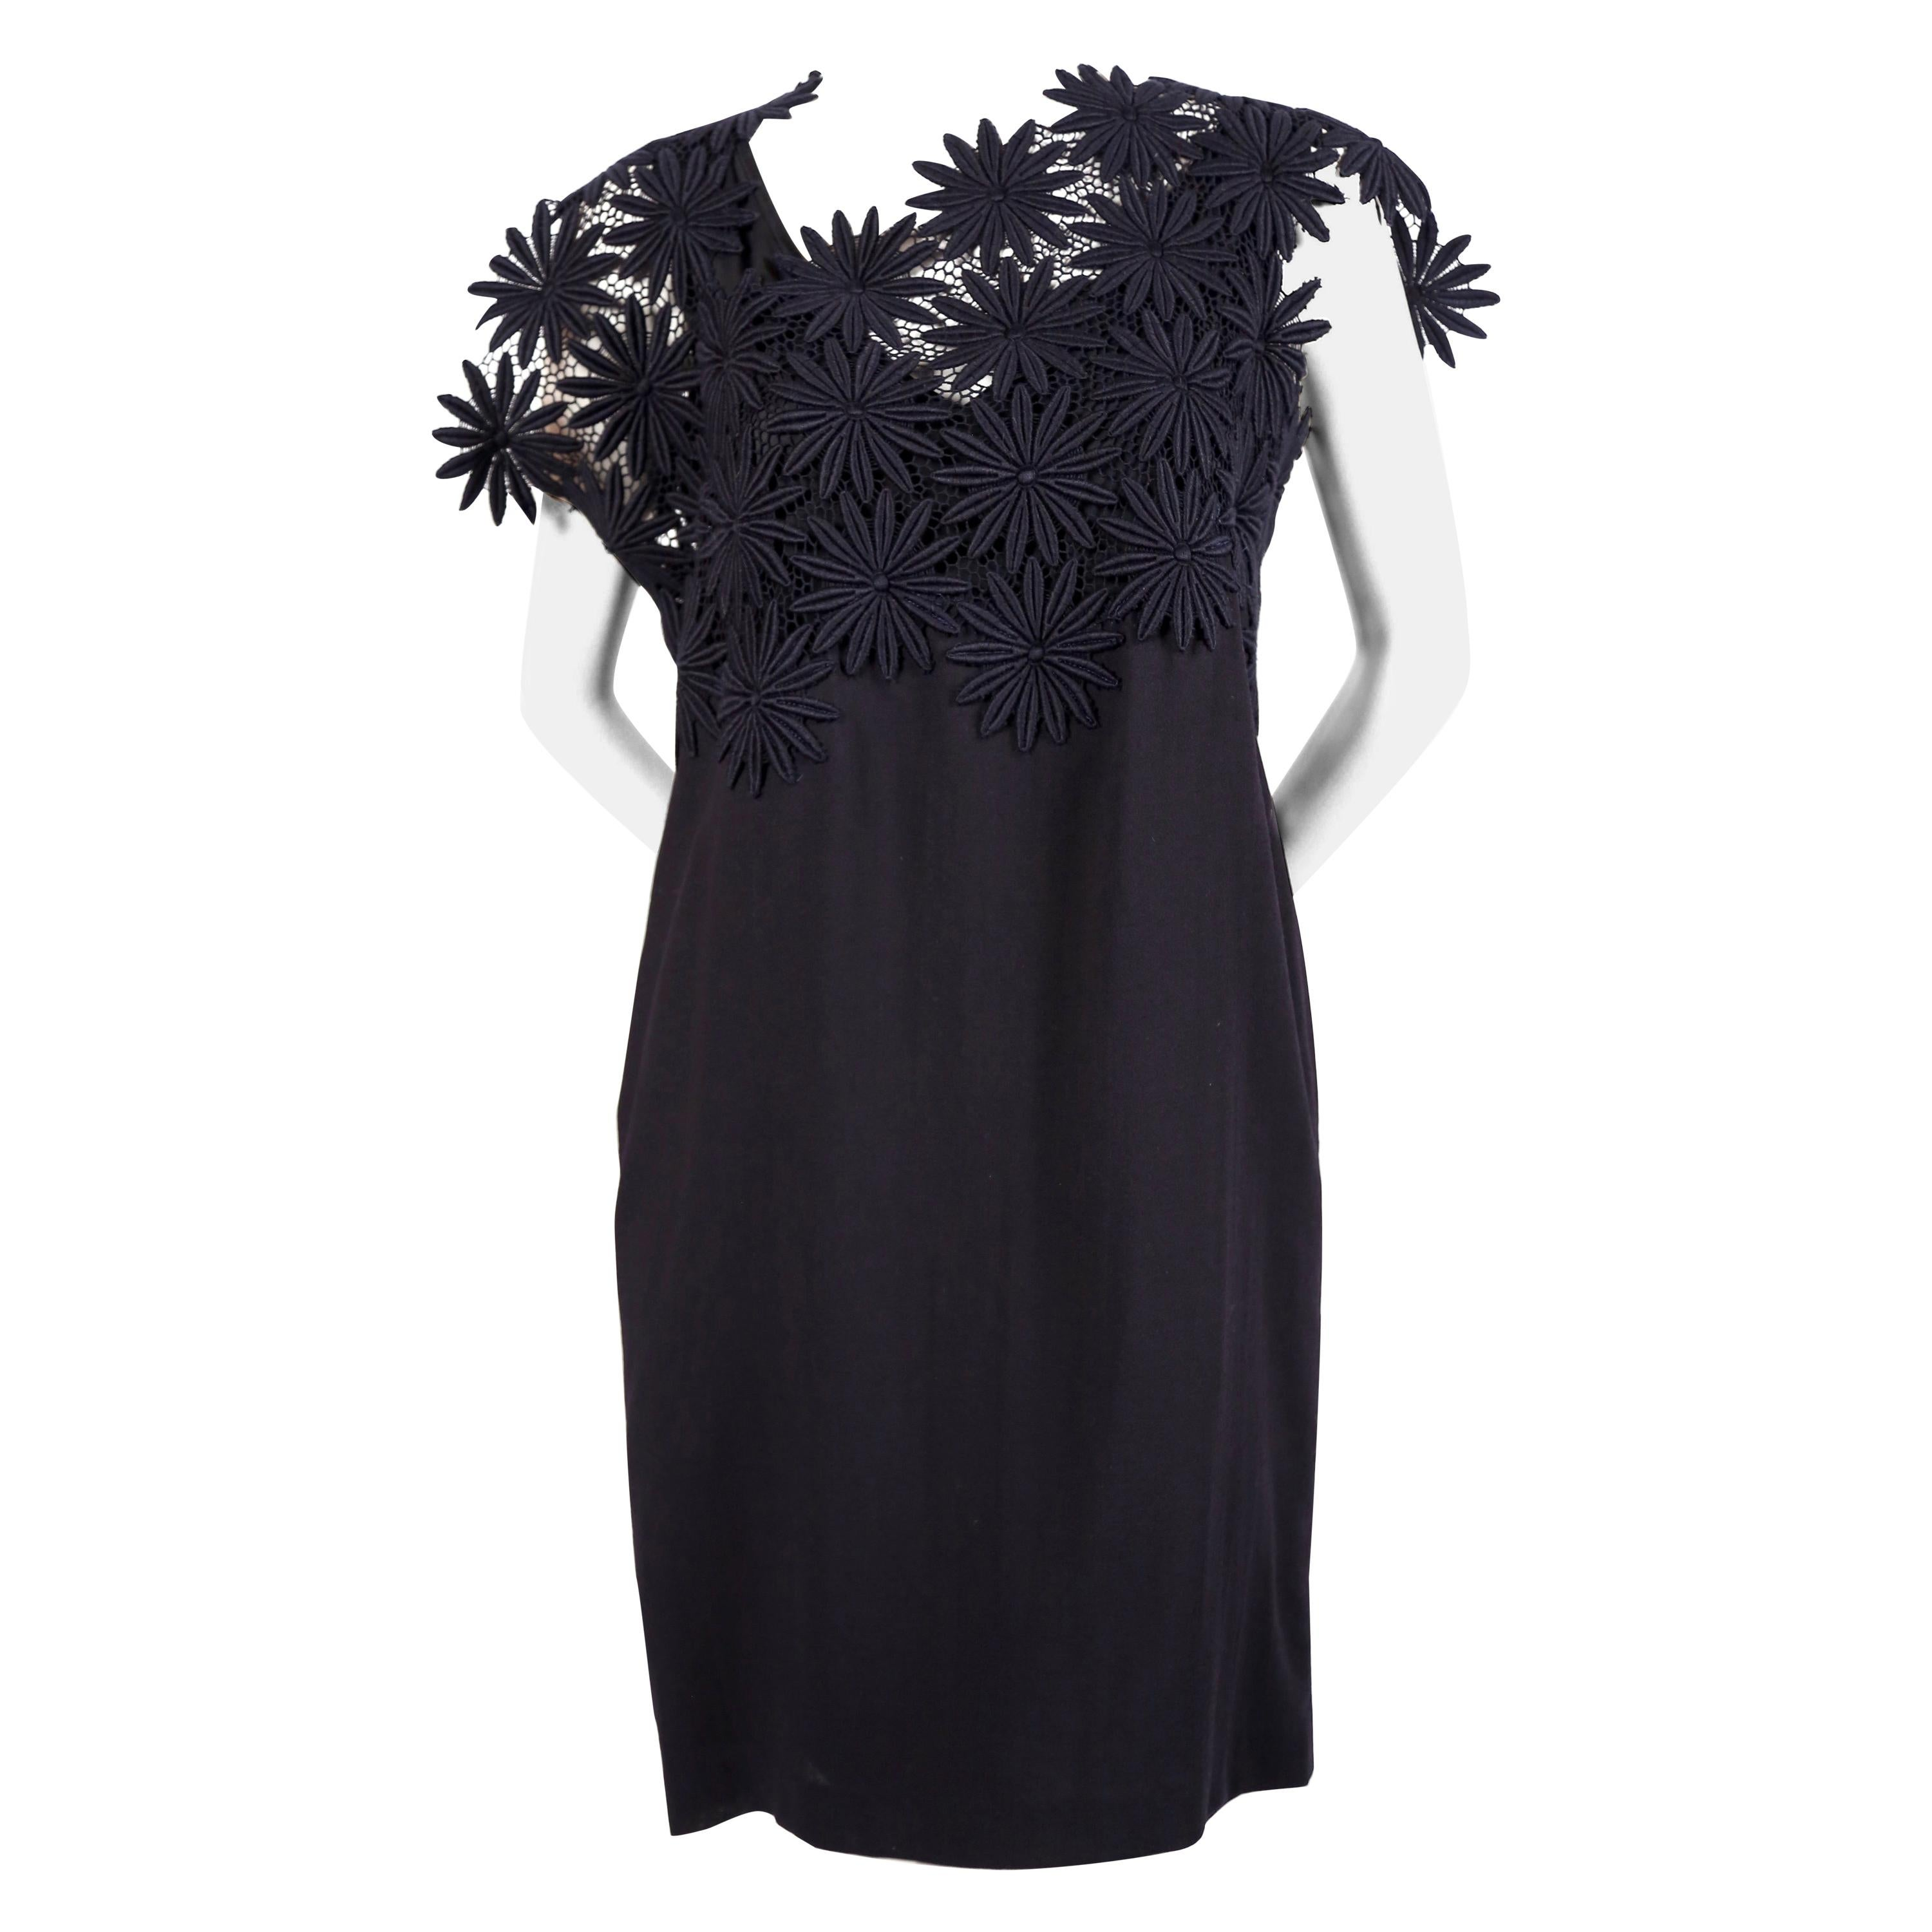 1991 COMME DES GARCONS navy blue embroidered lace runway dress